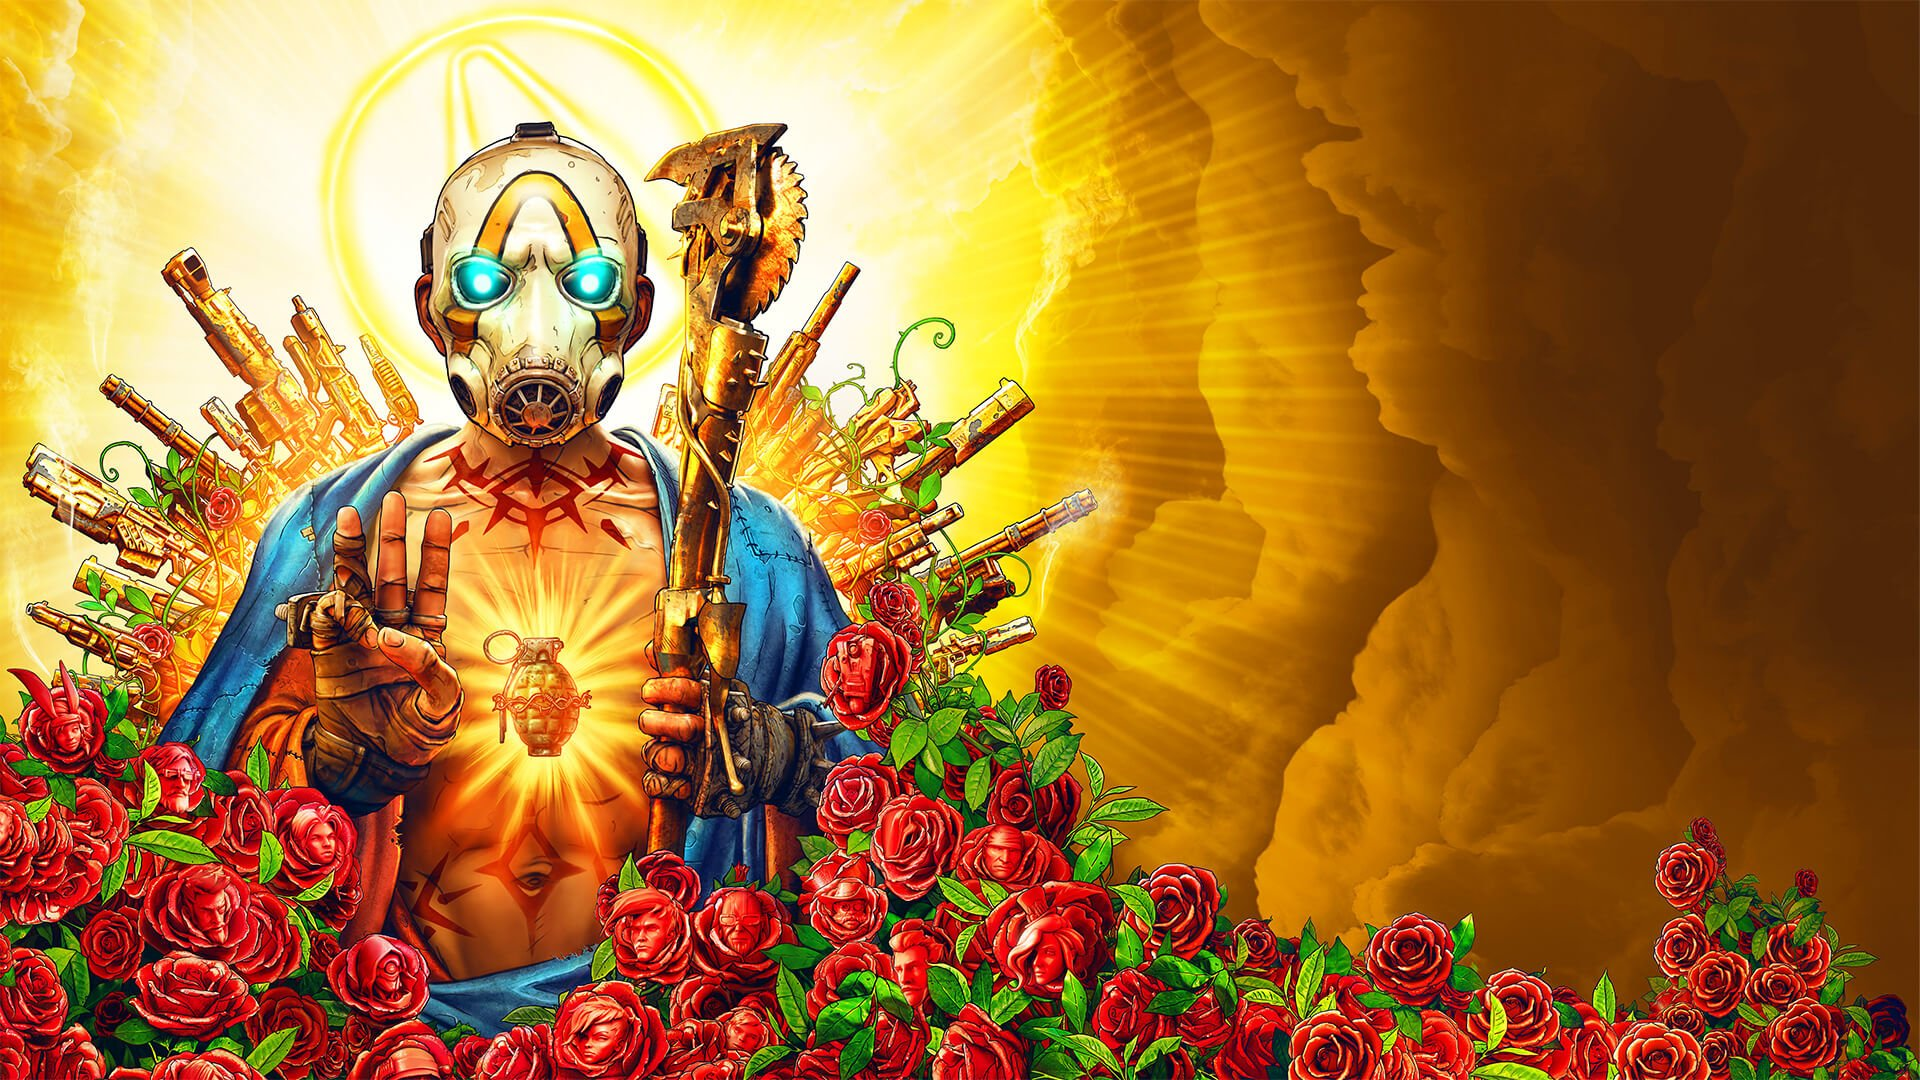 Borderlands 3 HD Wallpapers